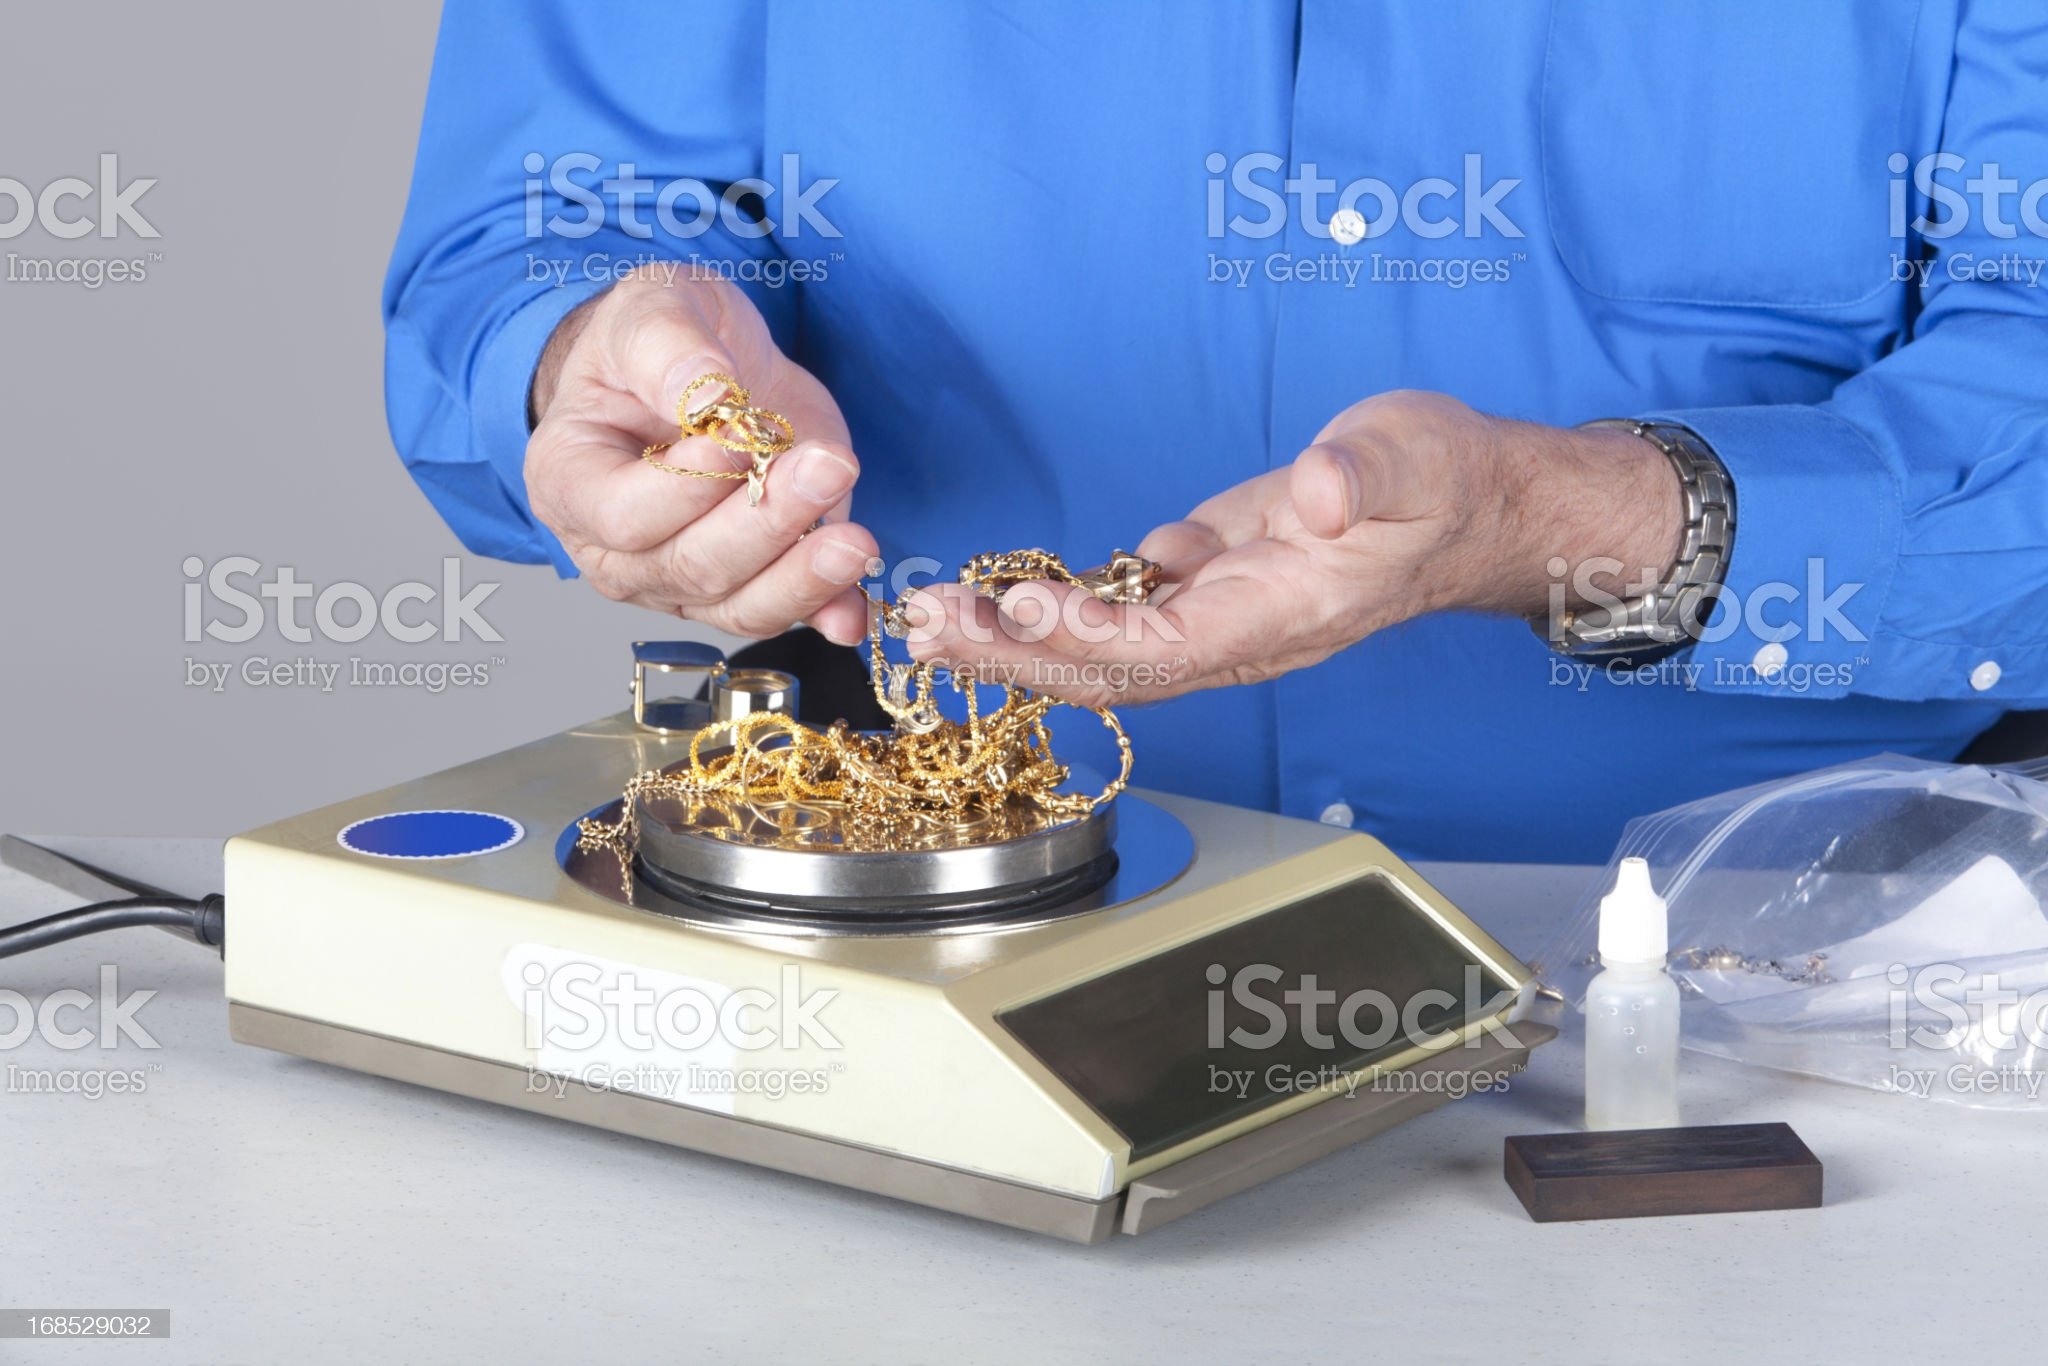 Two handy holding and weighing scrap gold royalty-free stock photo